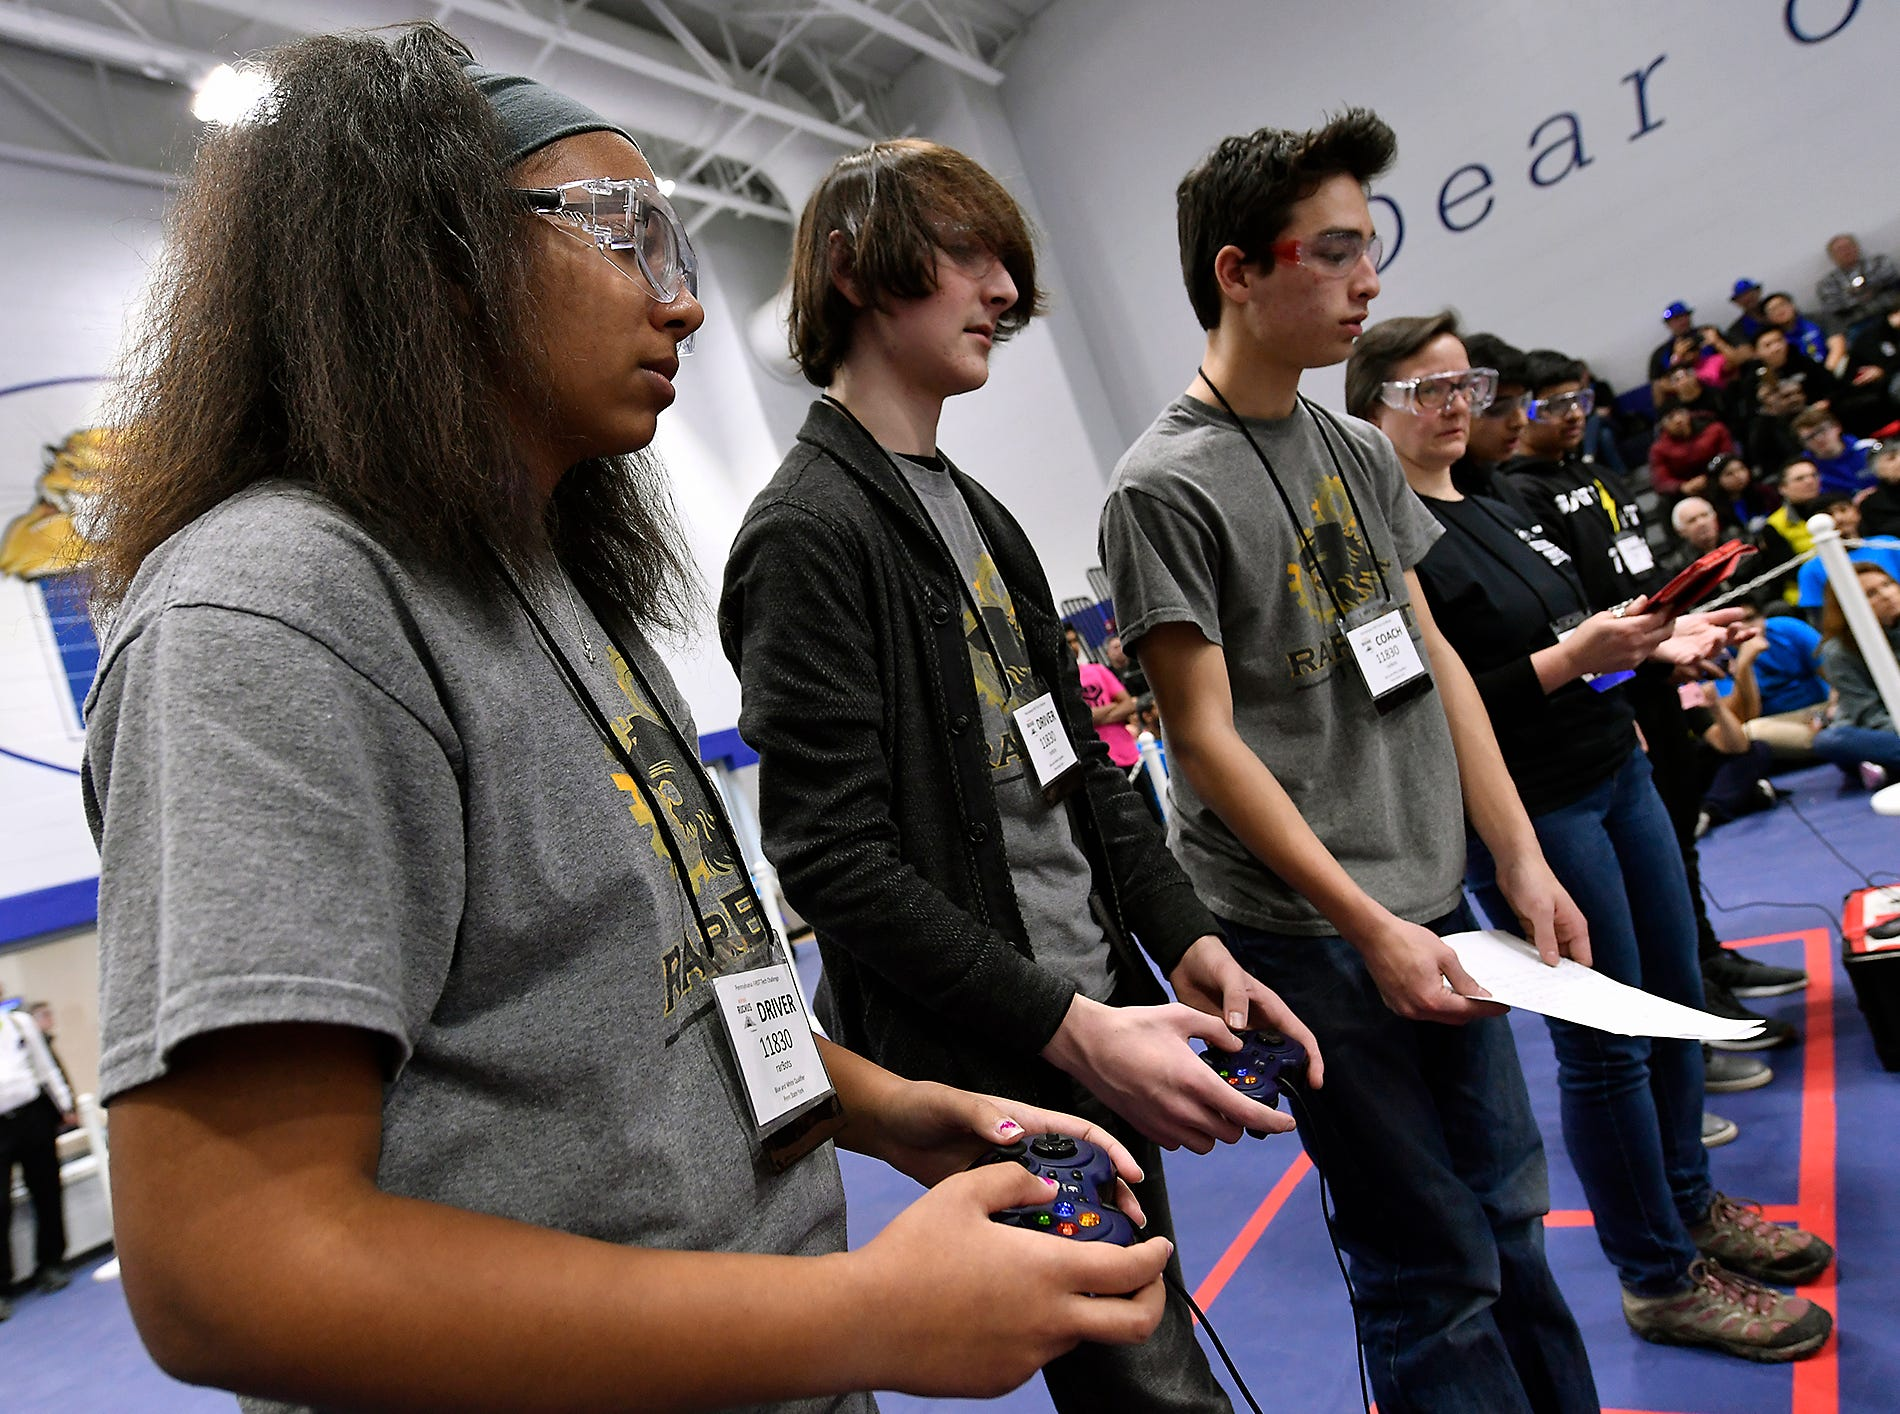 Zowie Murray, left, Reese Rulevich and Brandon Chen, right of the Red Lion High School team rorBots, maneuver their robot while competing in the Rover Ruckus robotics tournament at Penn State York, Sunday, February 3, 2019. John A. Pavoncello photo